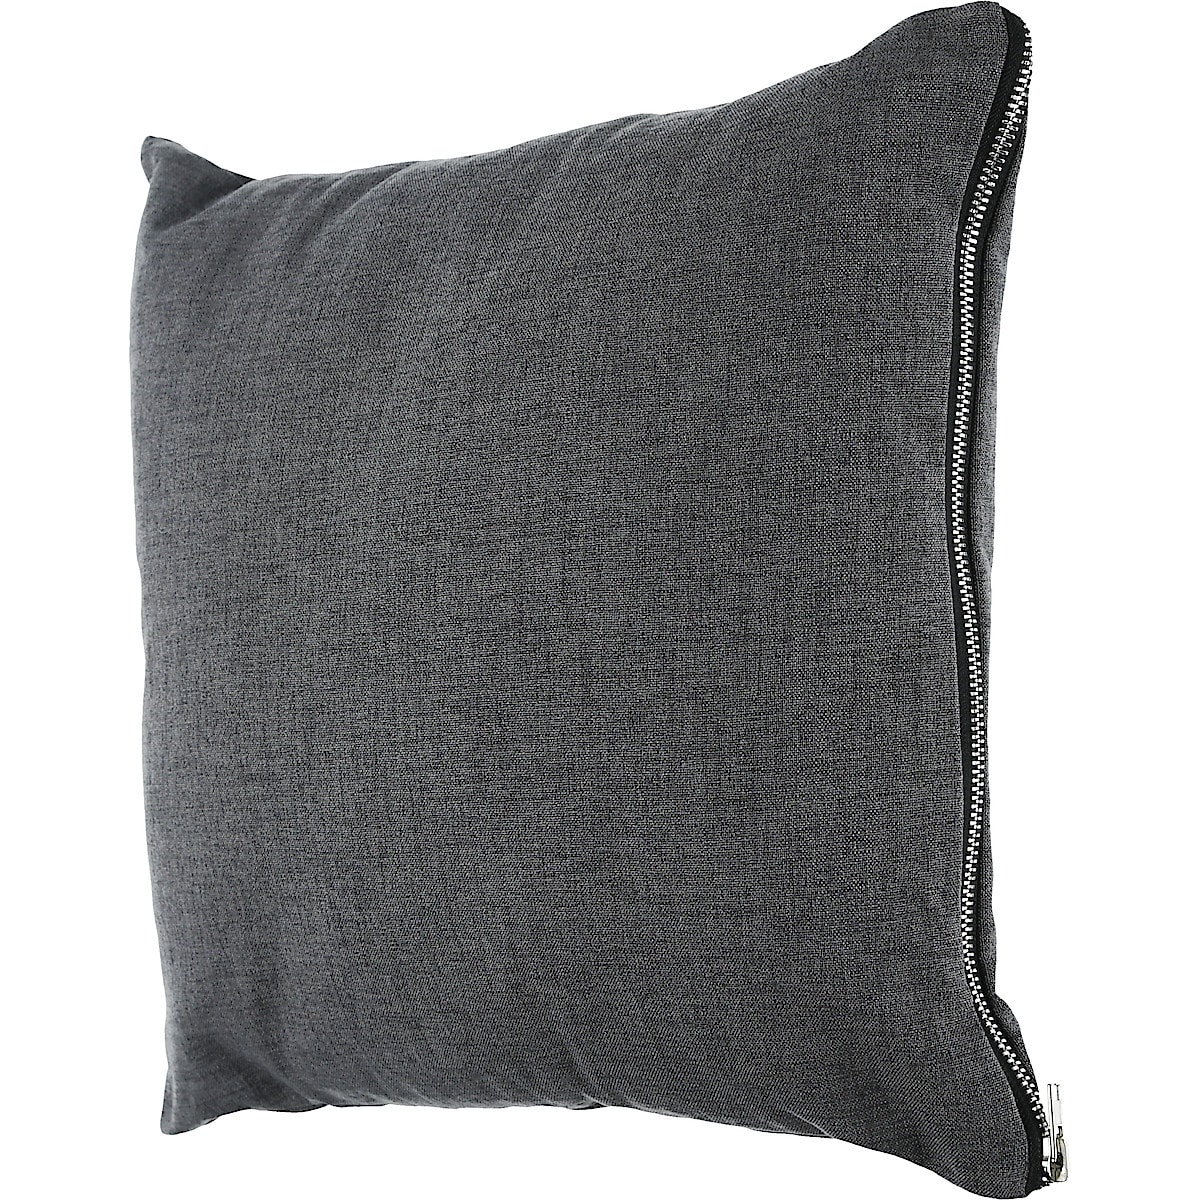 45x45 cm Cushion Cover